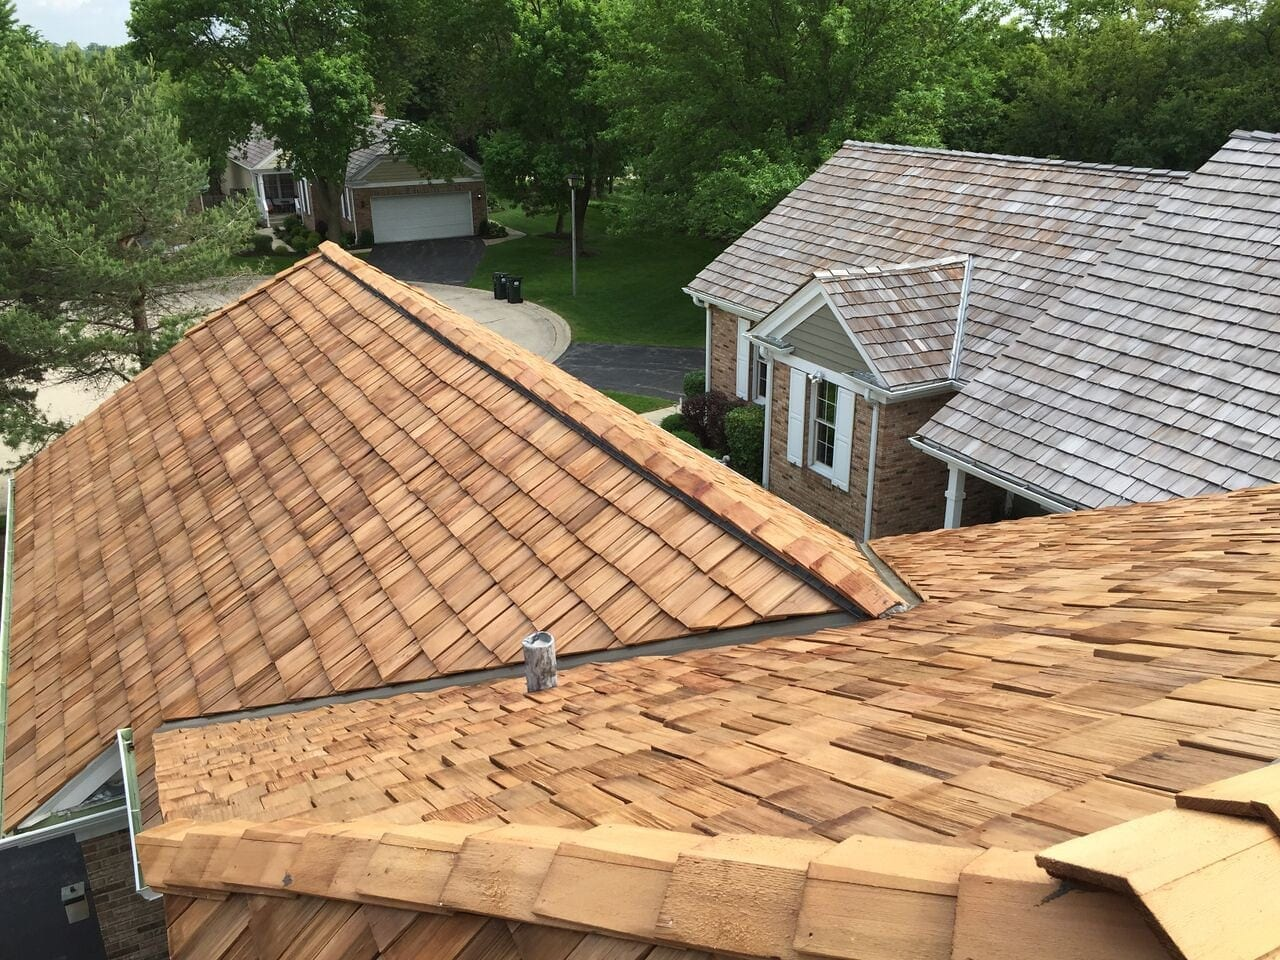 A roofing inspection can extend the life of your cedar roof.